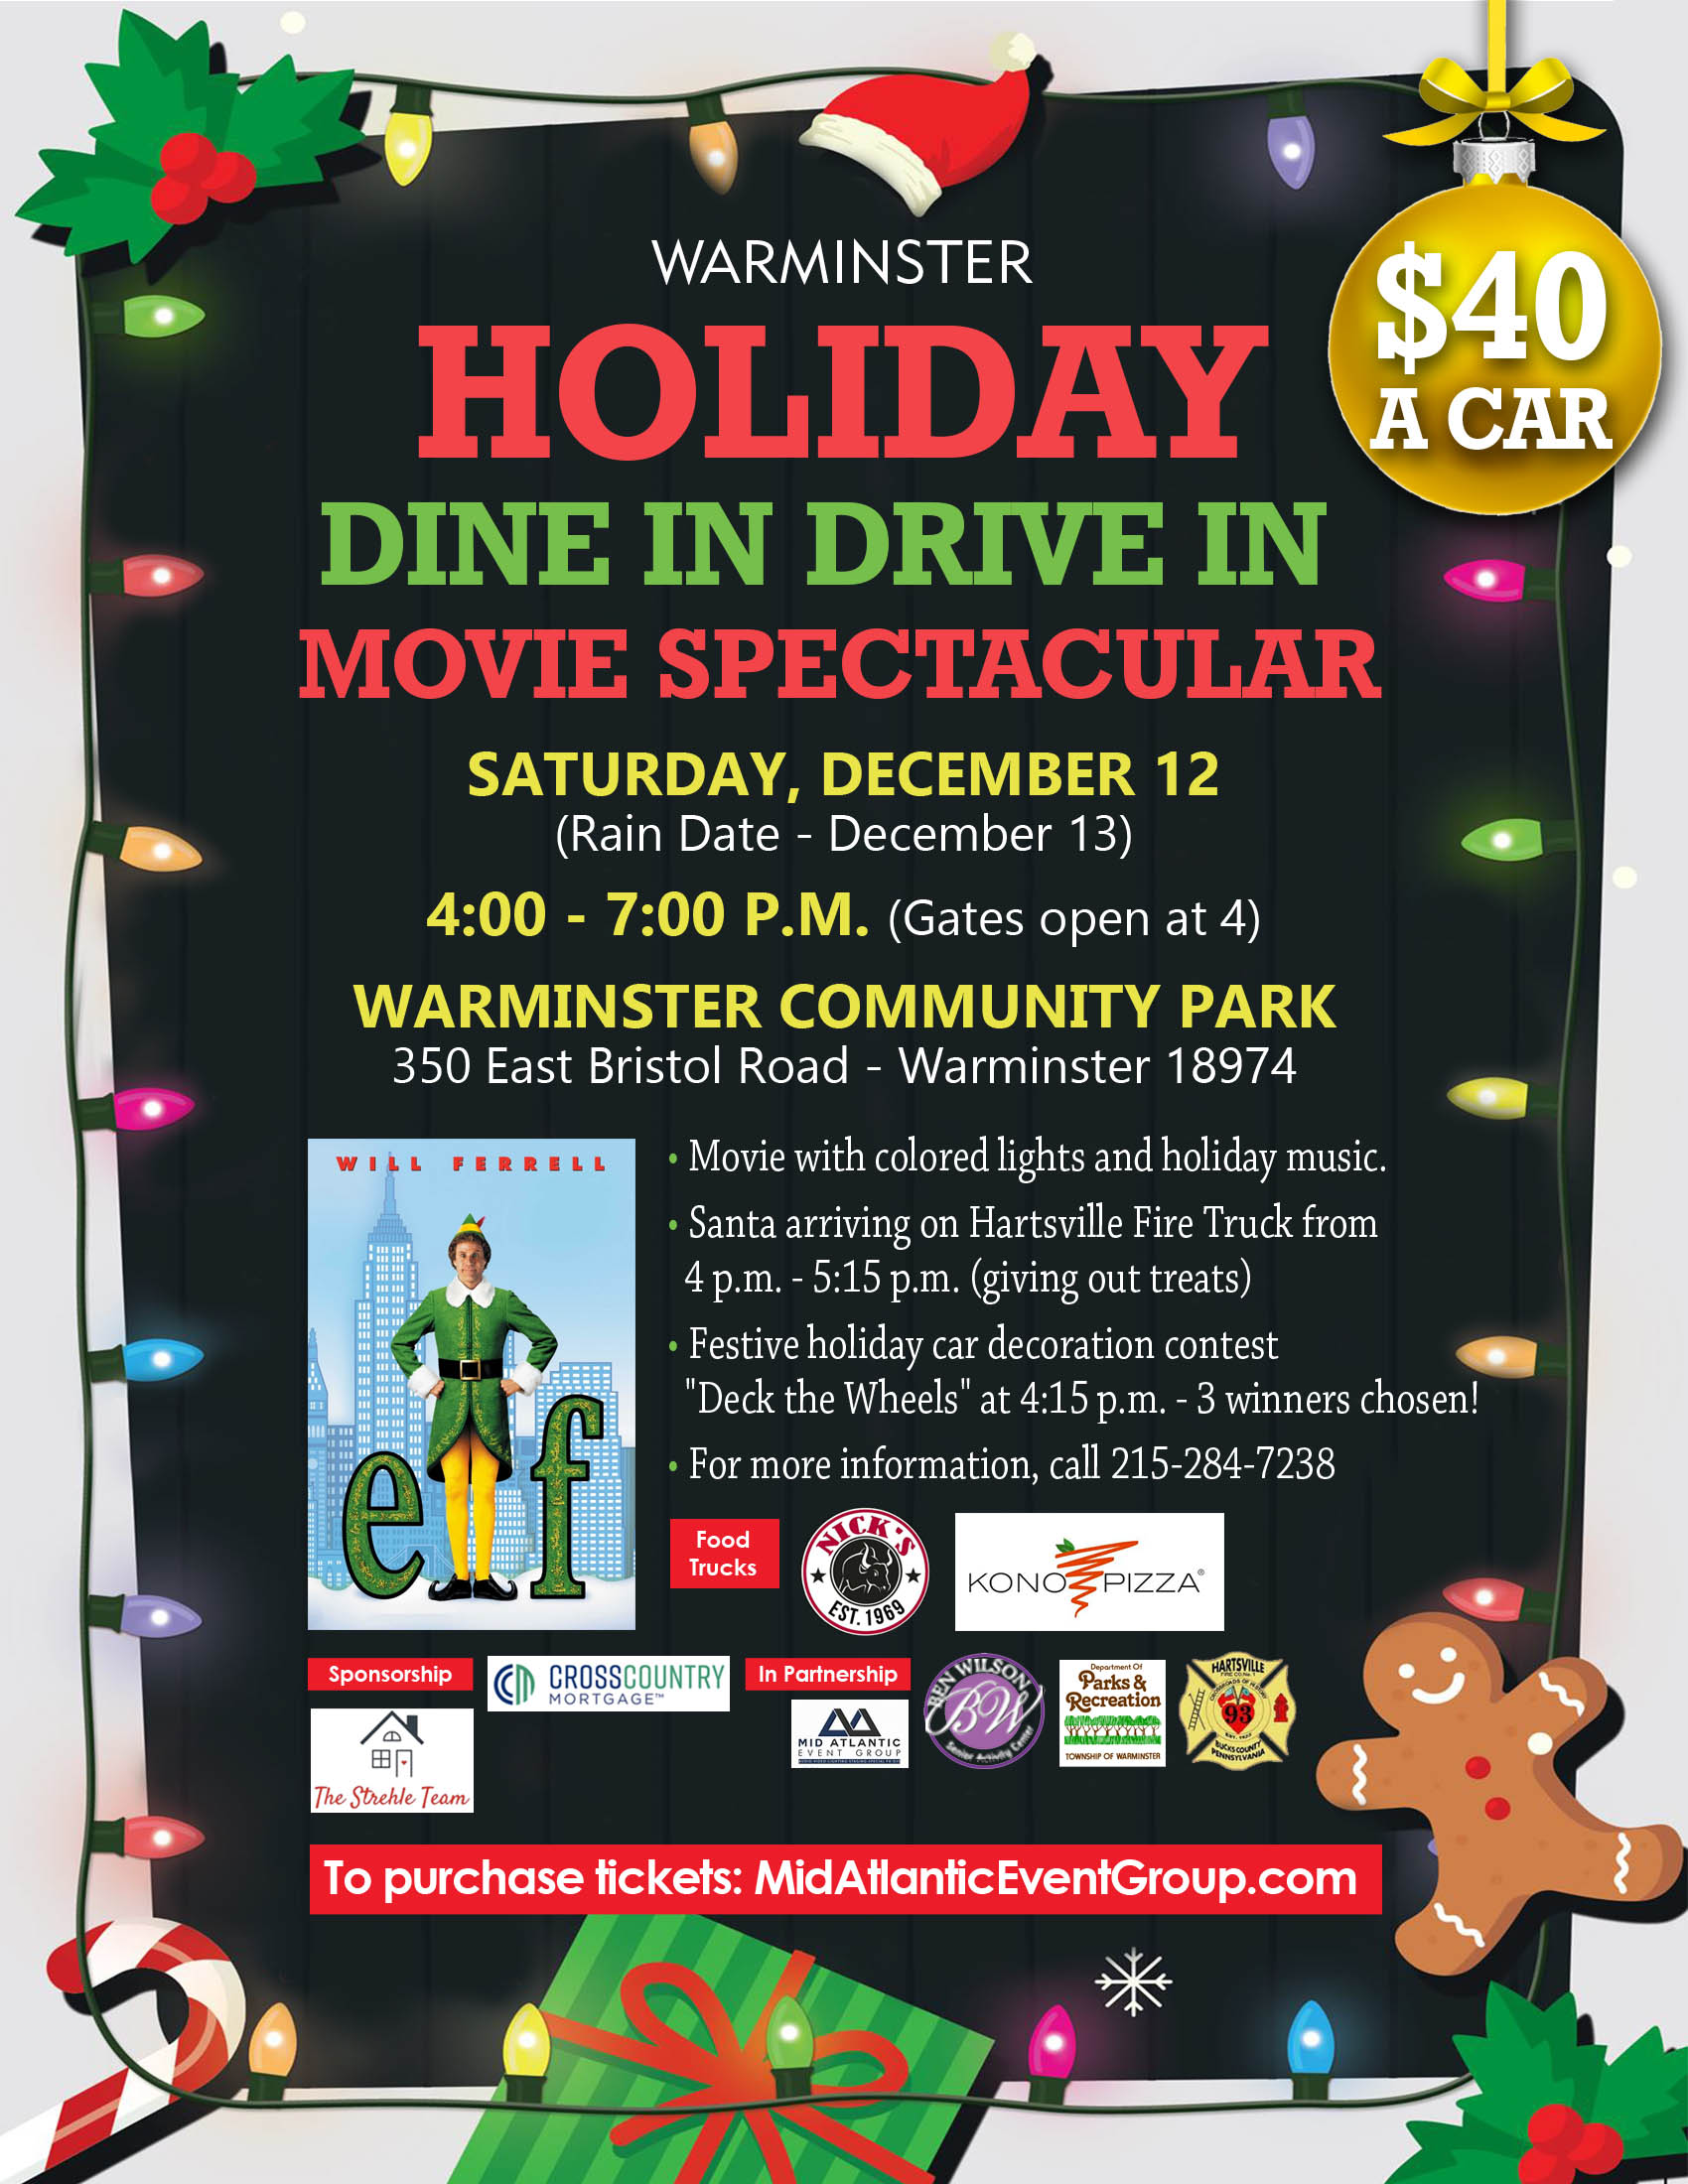 Warminster Holiday Dine in Drive in Movie Spectacular